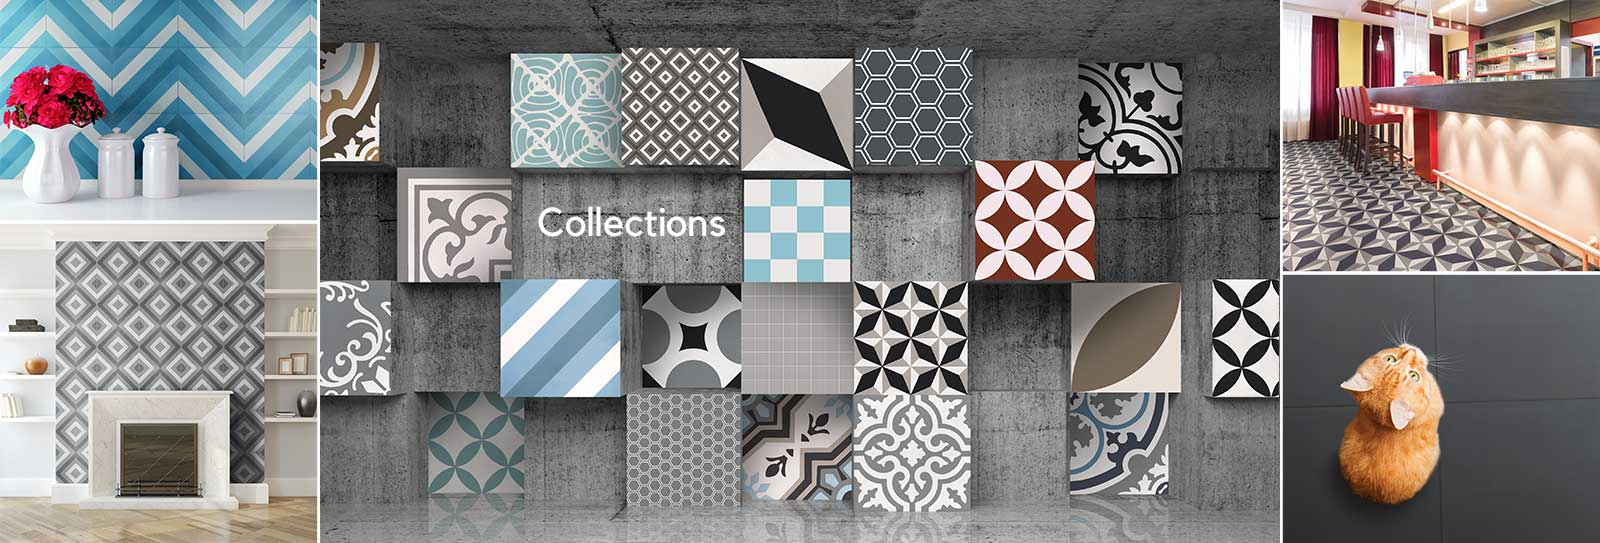 Collections header